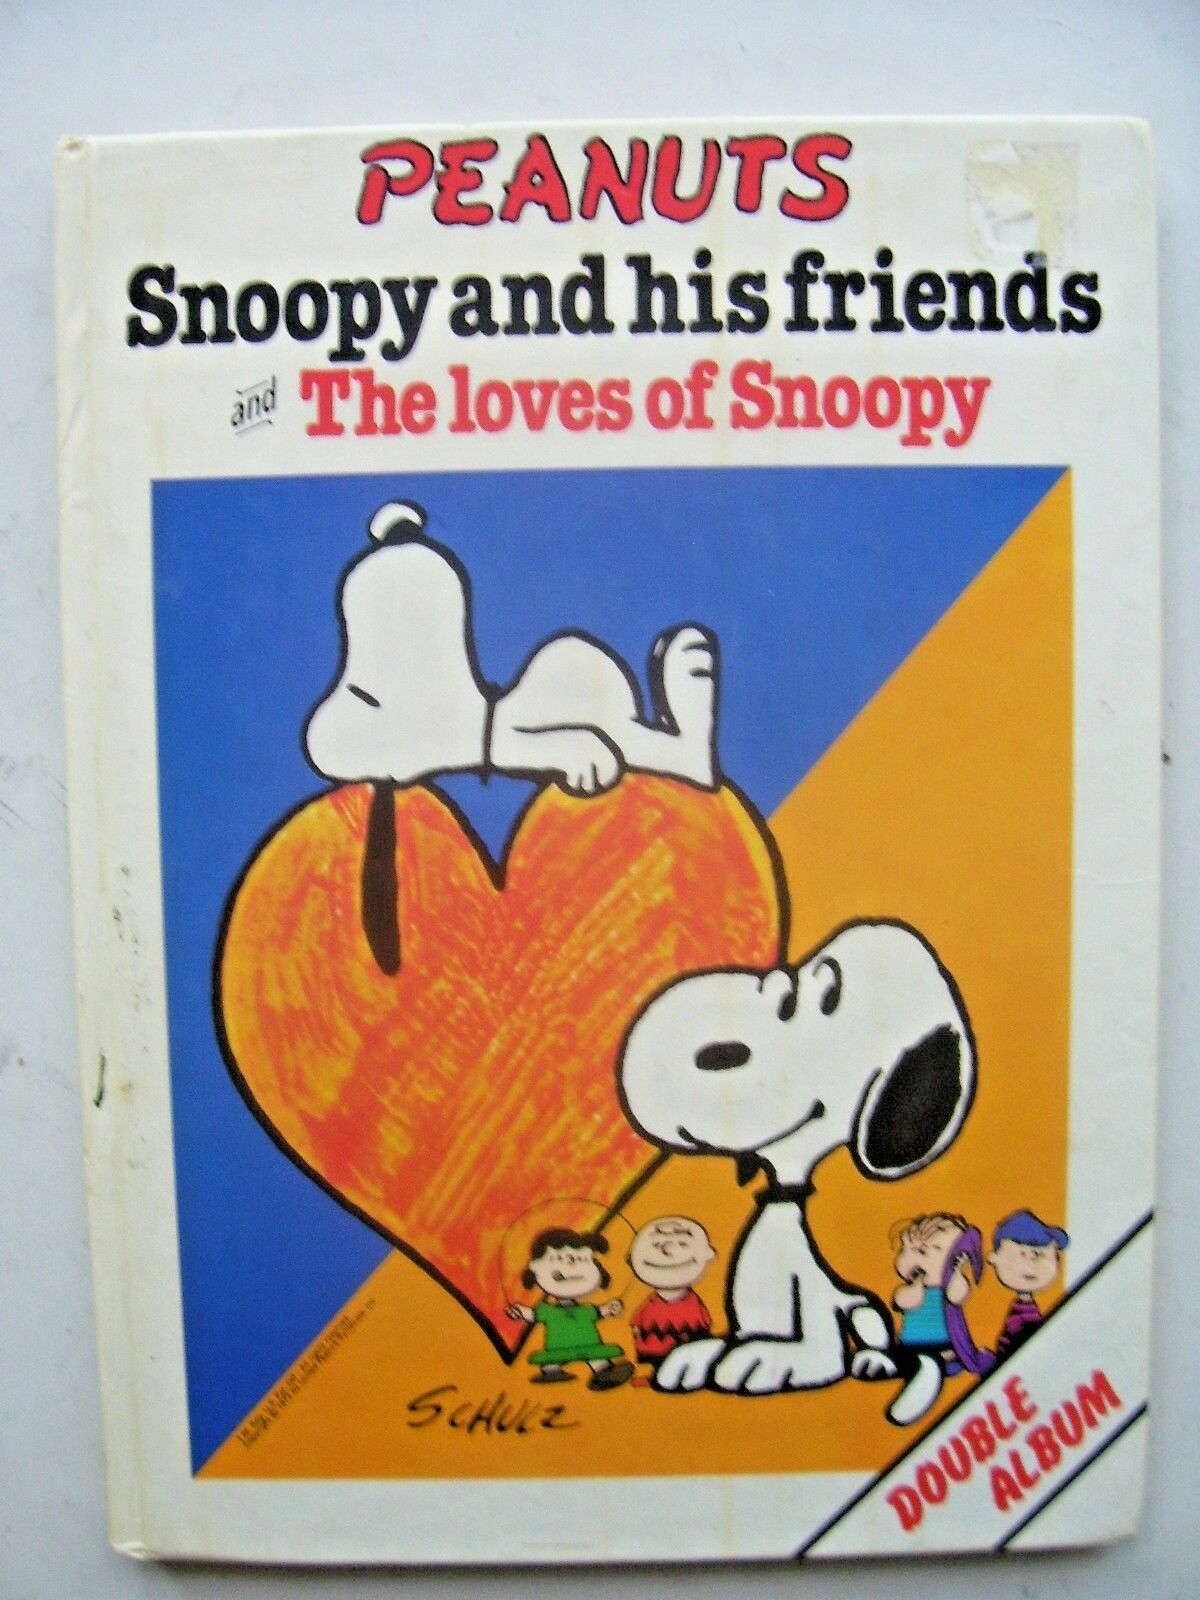 Peanuts, Snoopy and Friends by Schulz 1980  Hardback